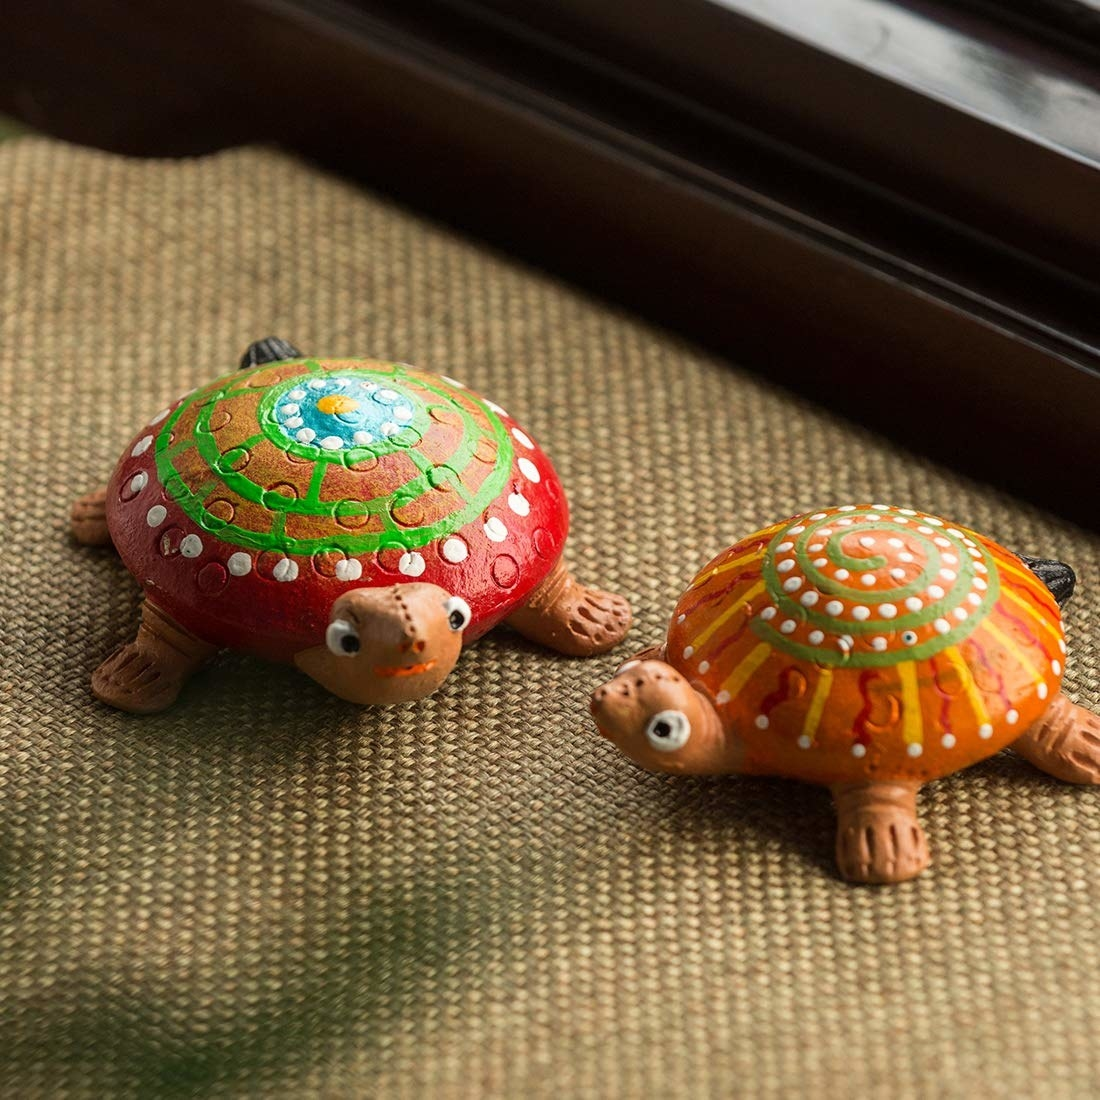 Two handpainted turtles on a table